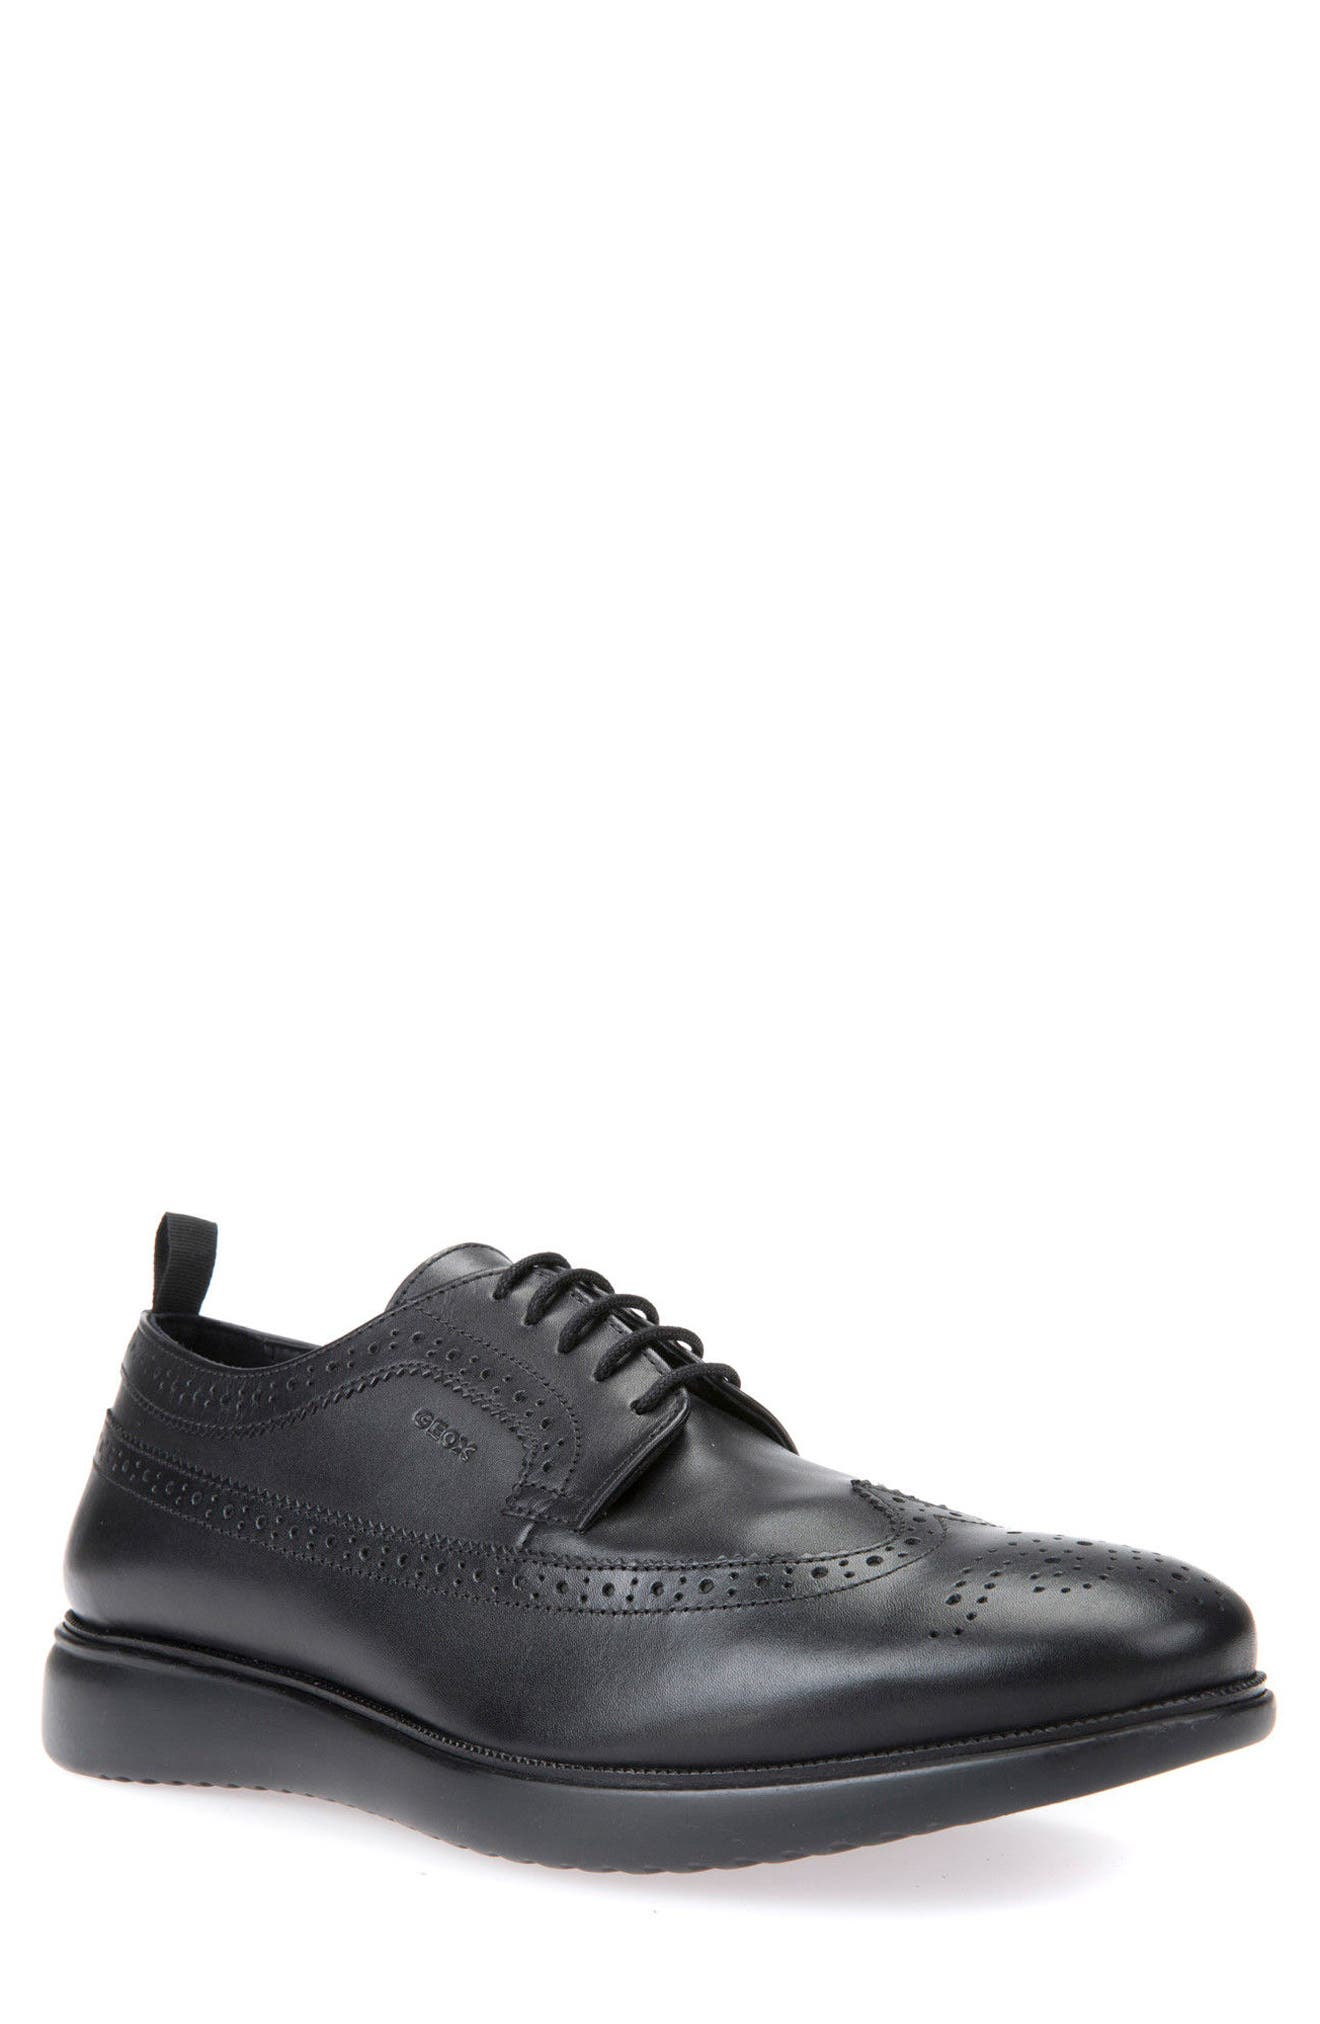 Winfred 3 Wingtip,                             Main thumbnail 1, color,                             Black Leather